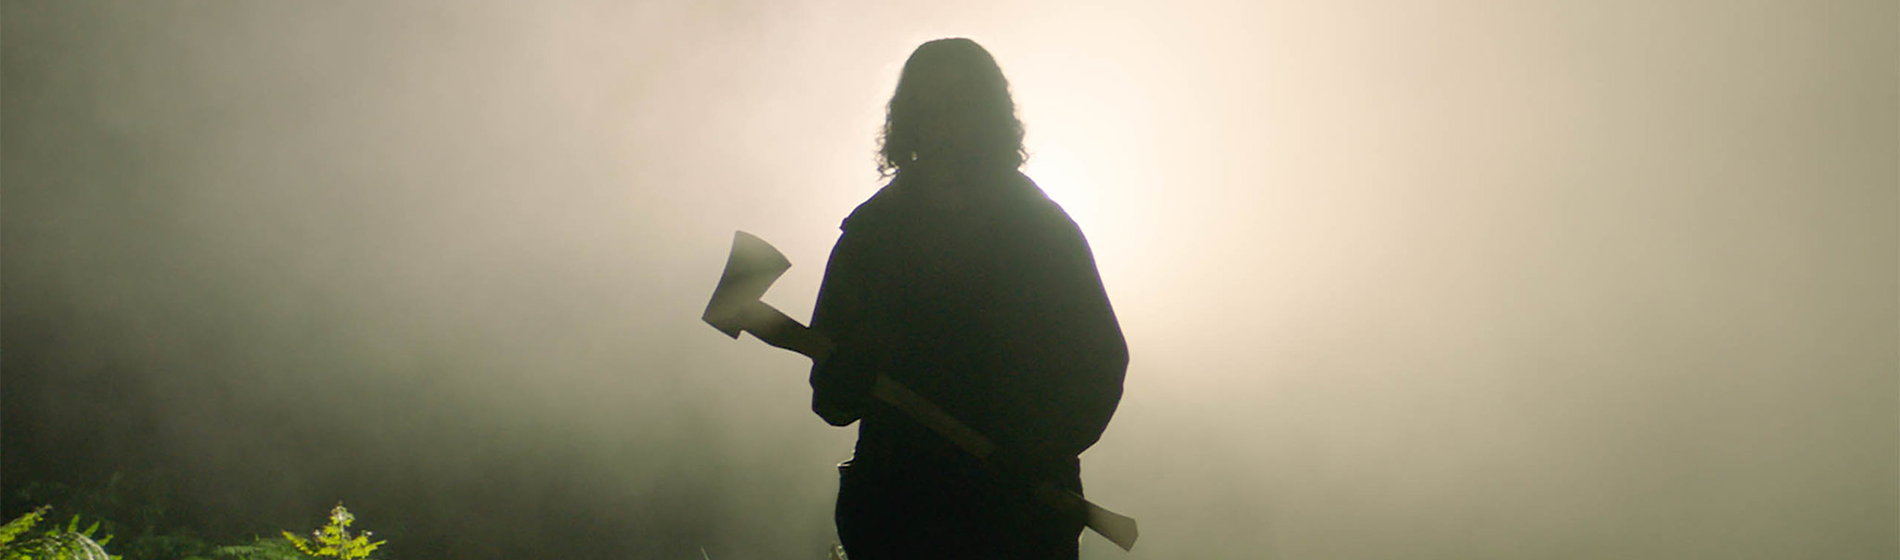 A still from In The Earth showing the silhouette of a person holding an axe.